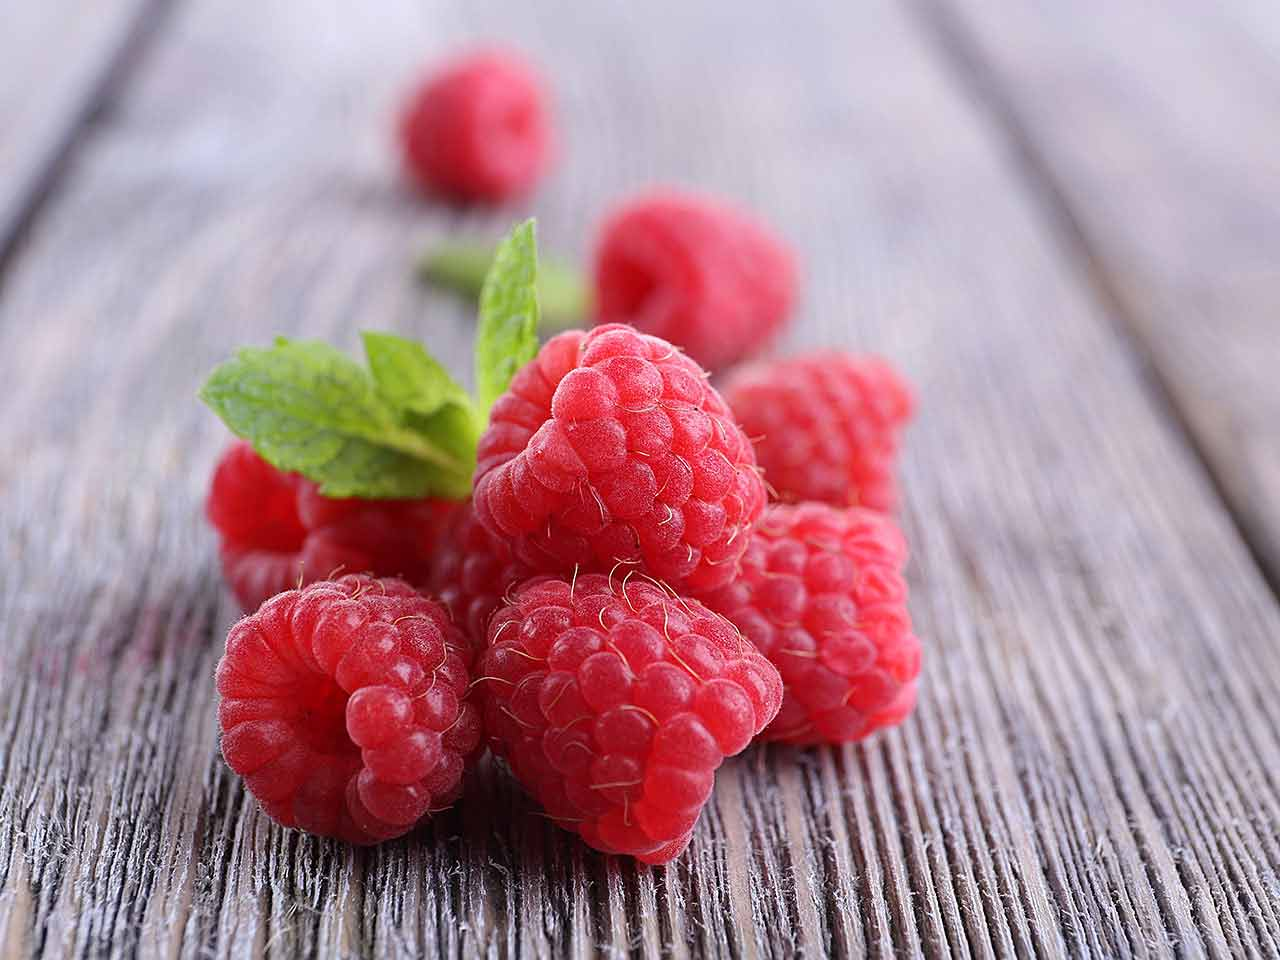 Close up of raspberries on wooden table